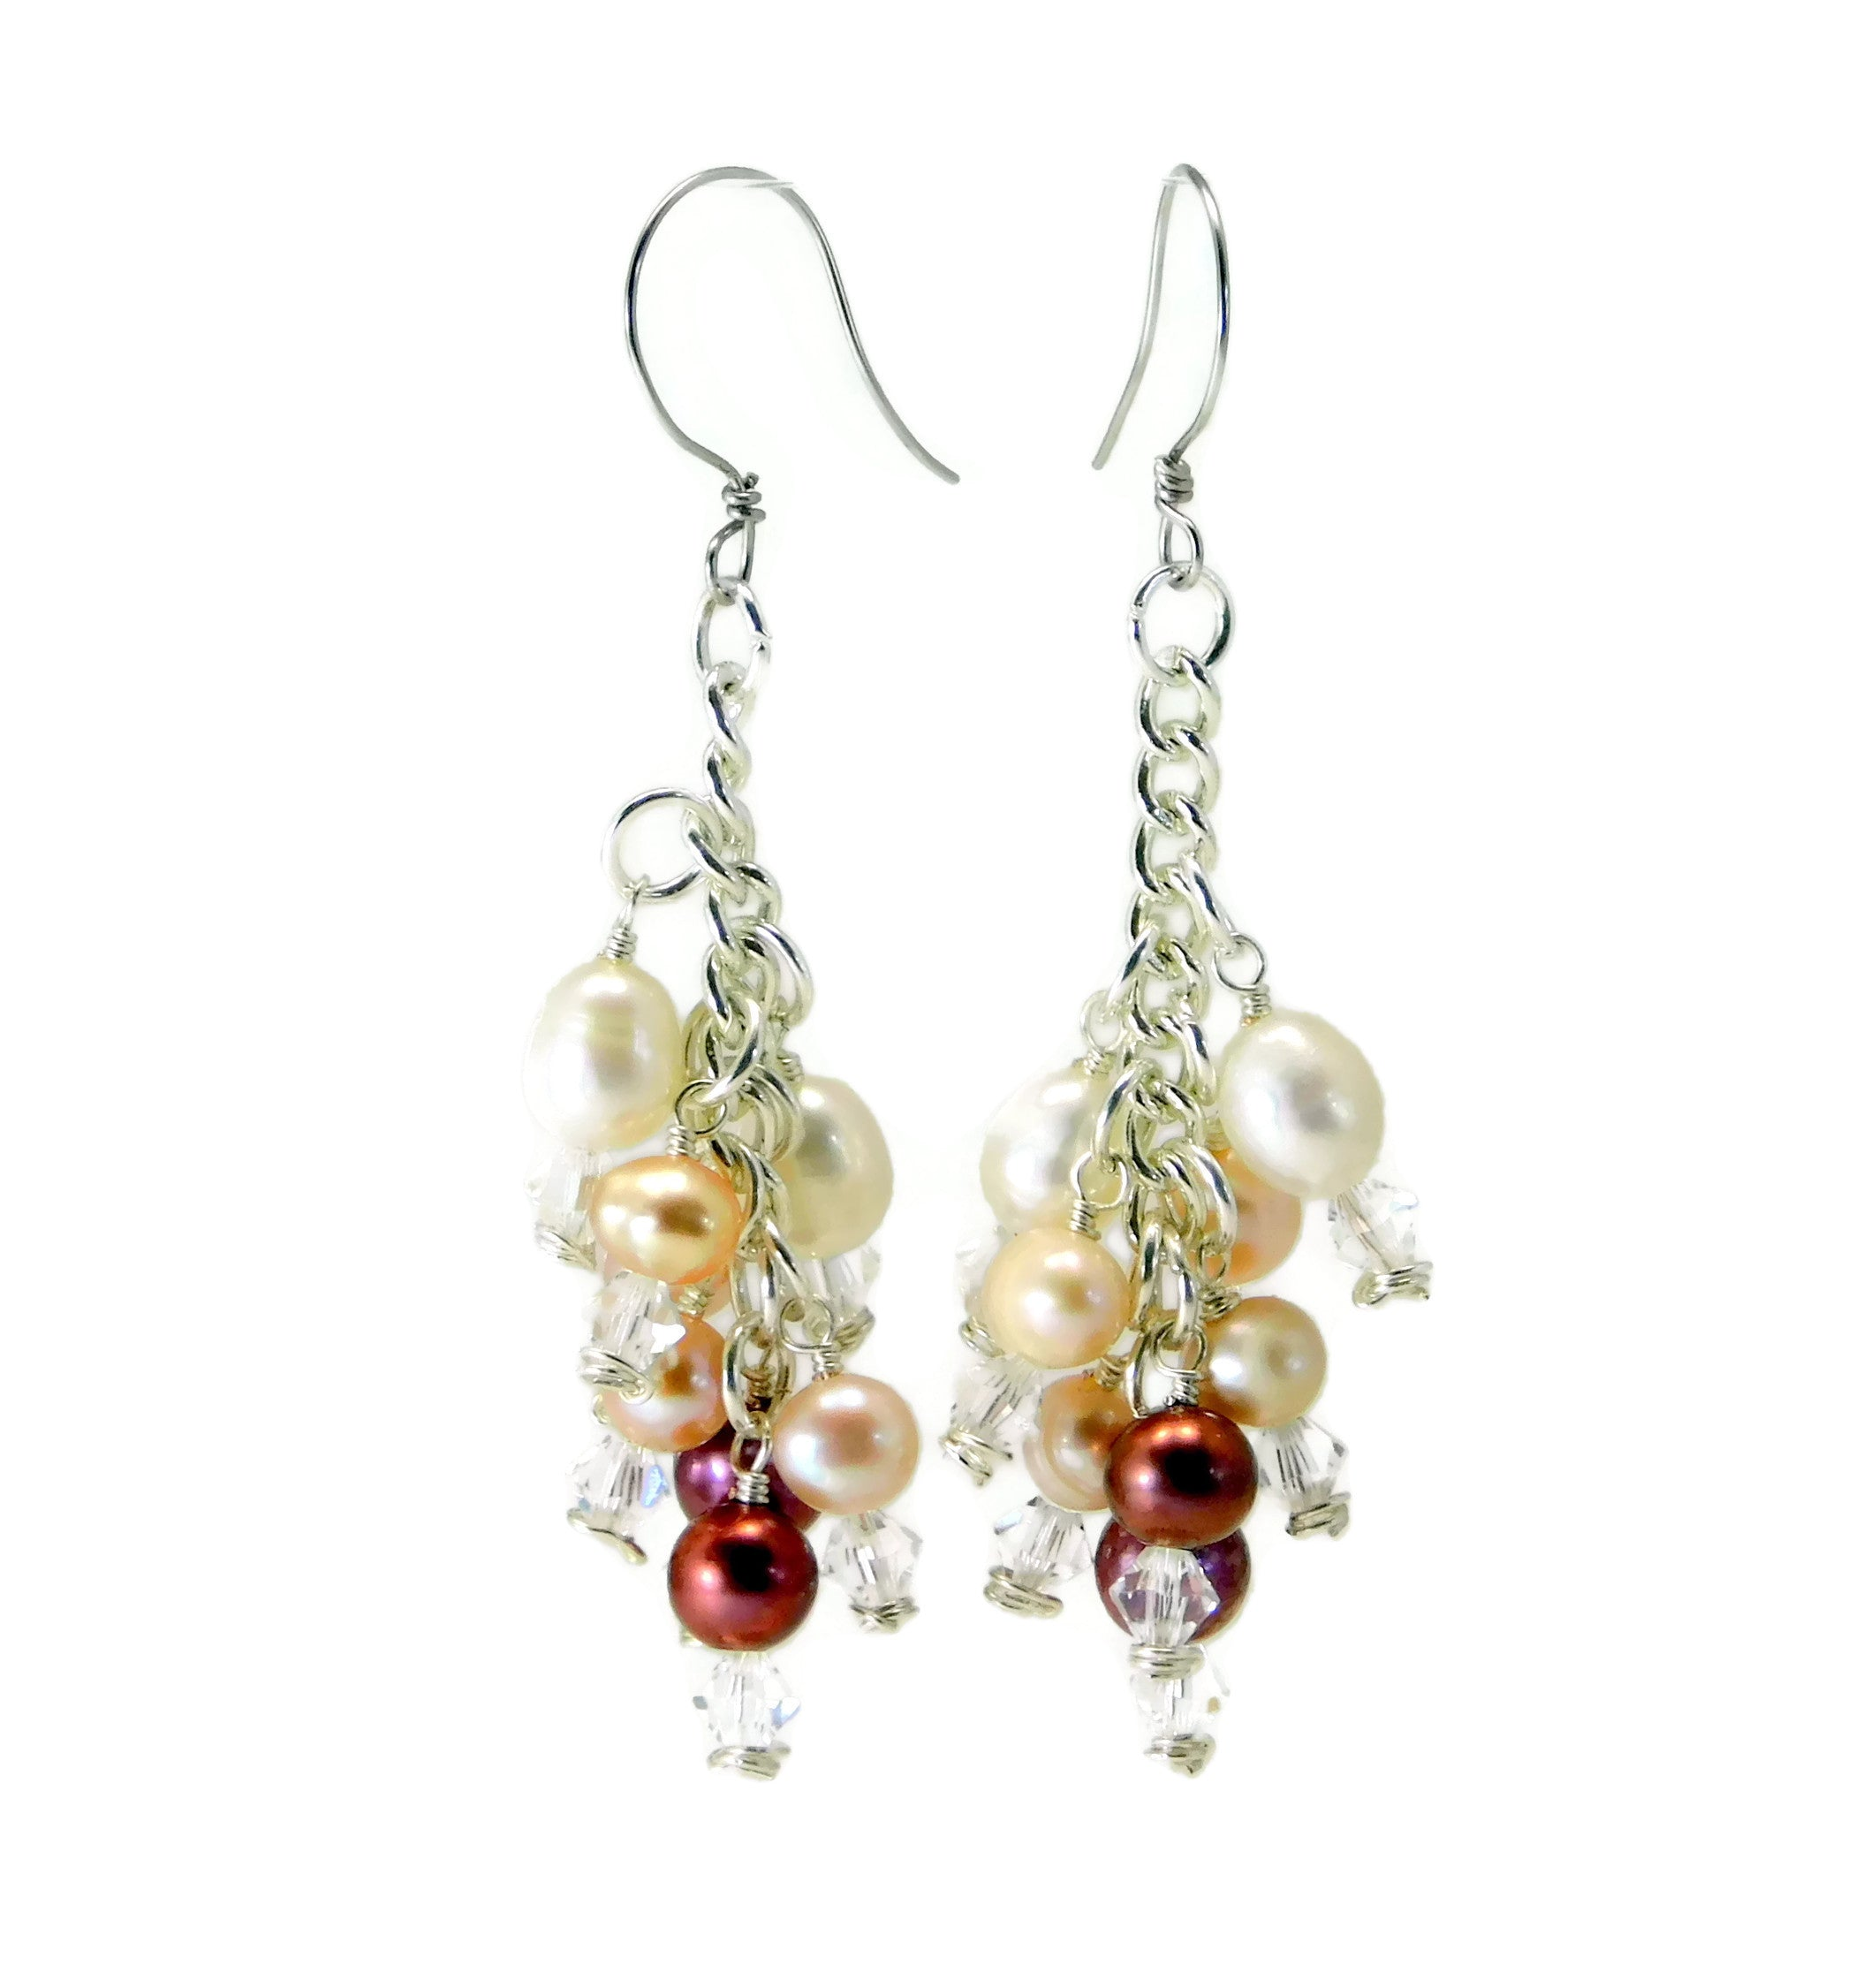 Swarovski and Freshwater Pearl Cluster Earrings DIY Wire Wrapping Kit